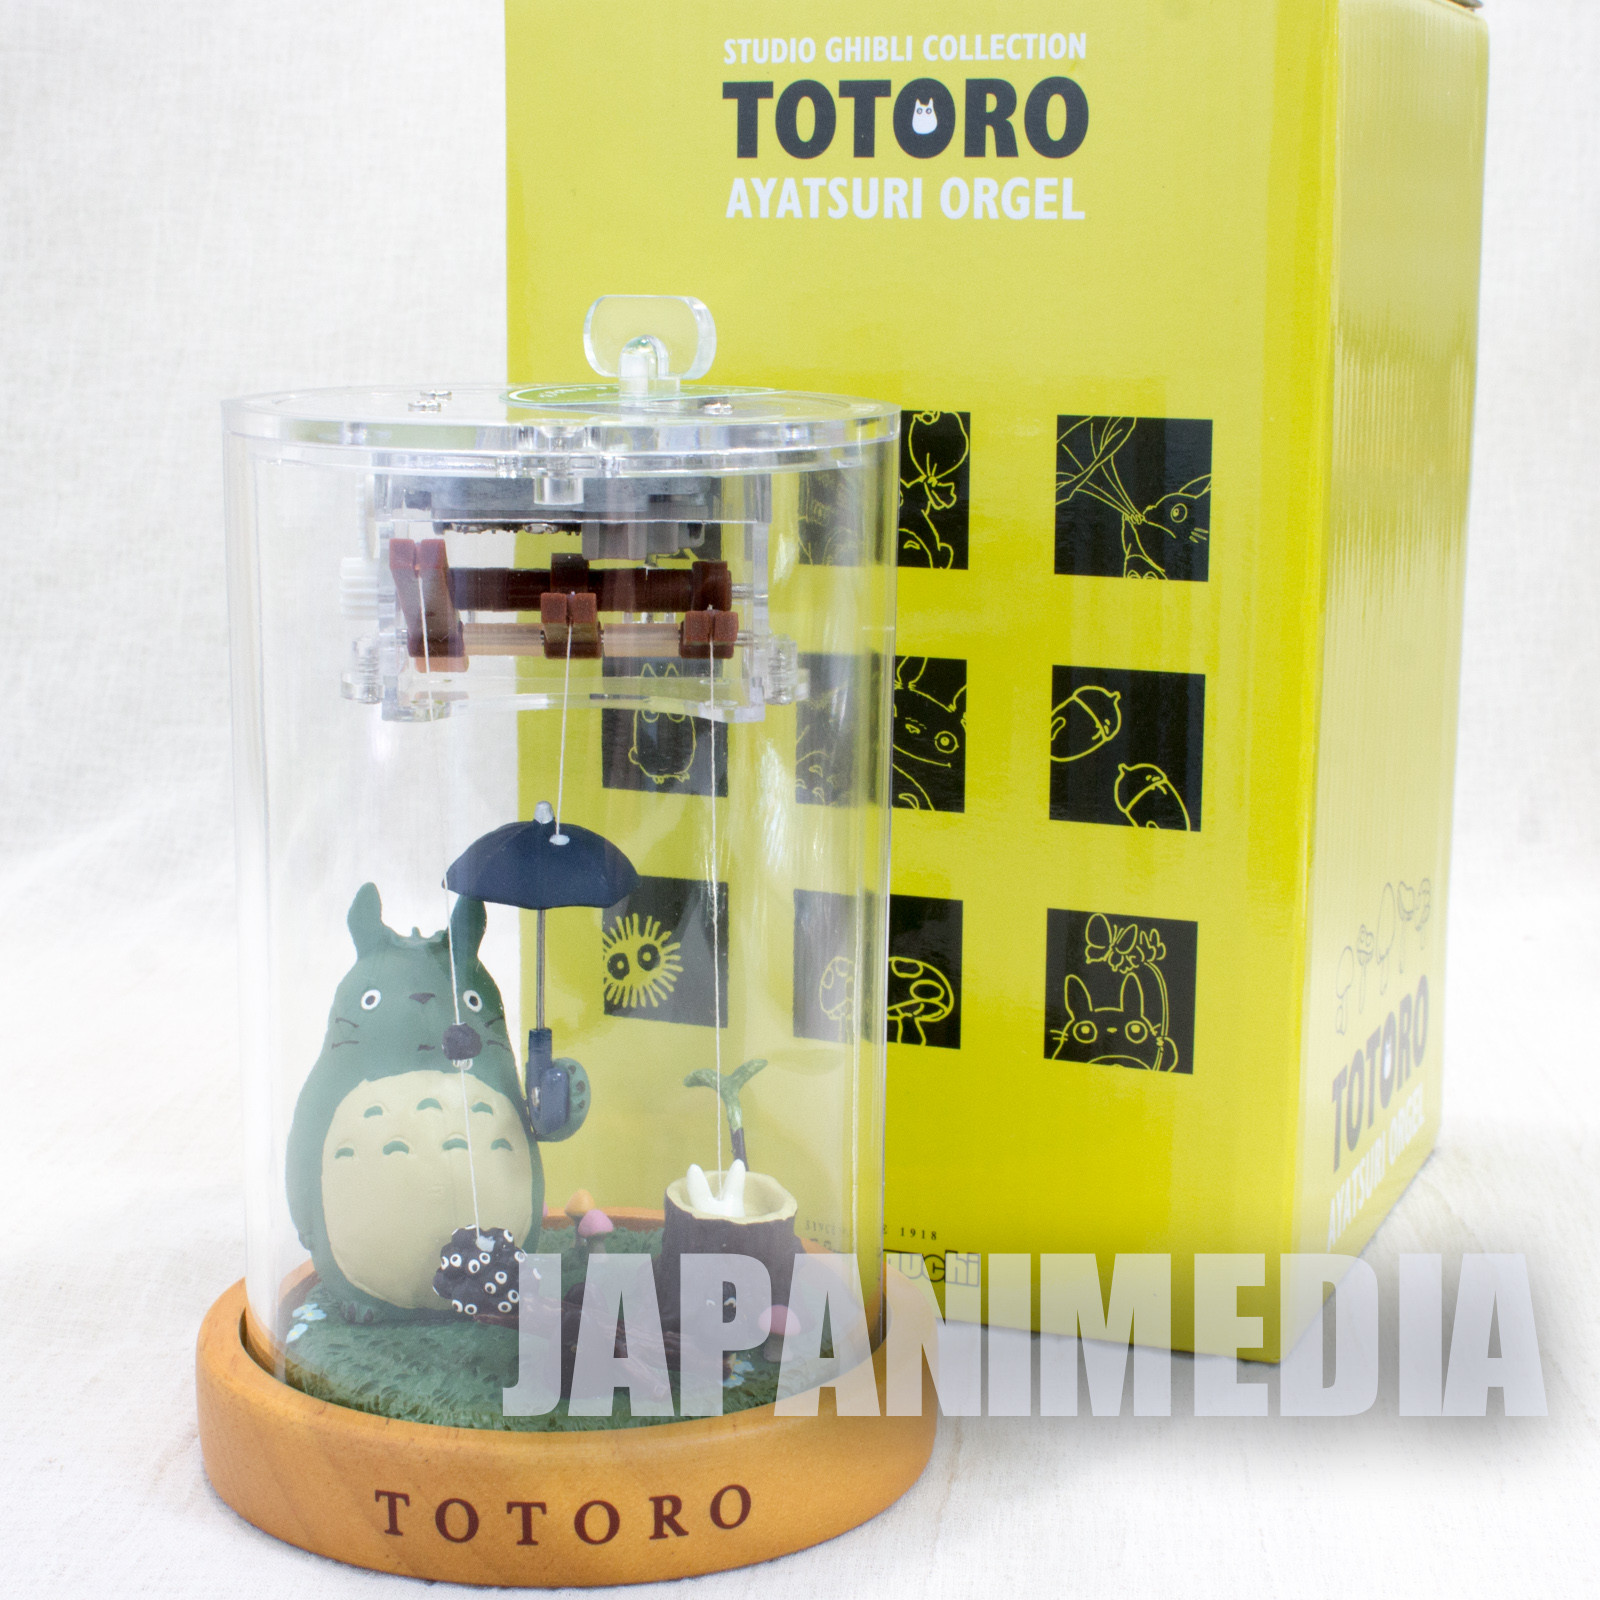 RARE! My Neighbor Totoro Marionette Music Box Figure Ghibli JAPAN ANIME ORGEL